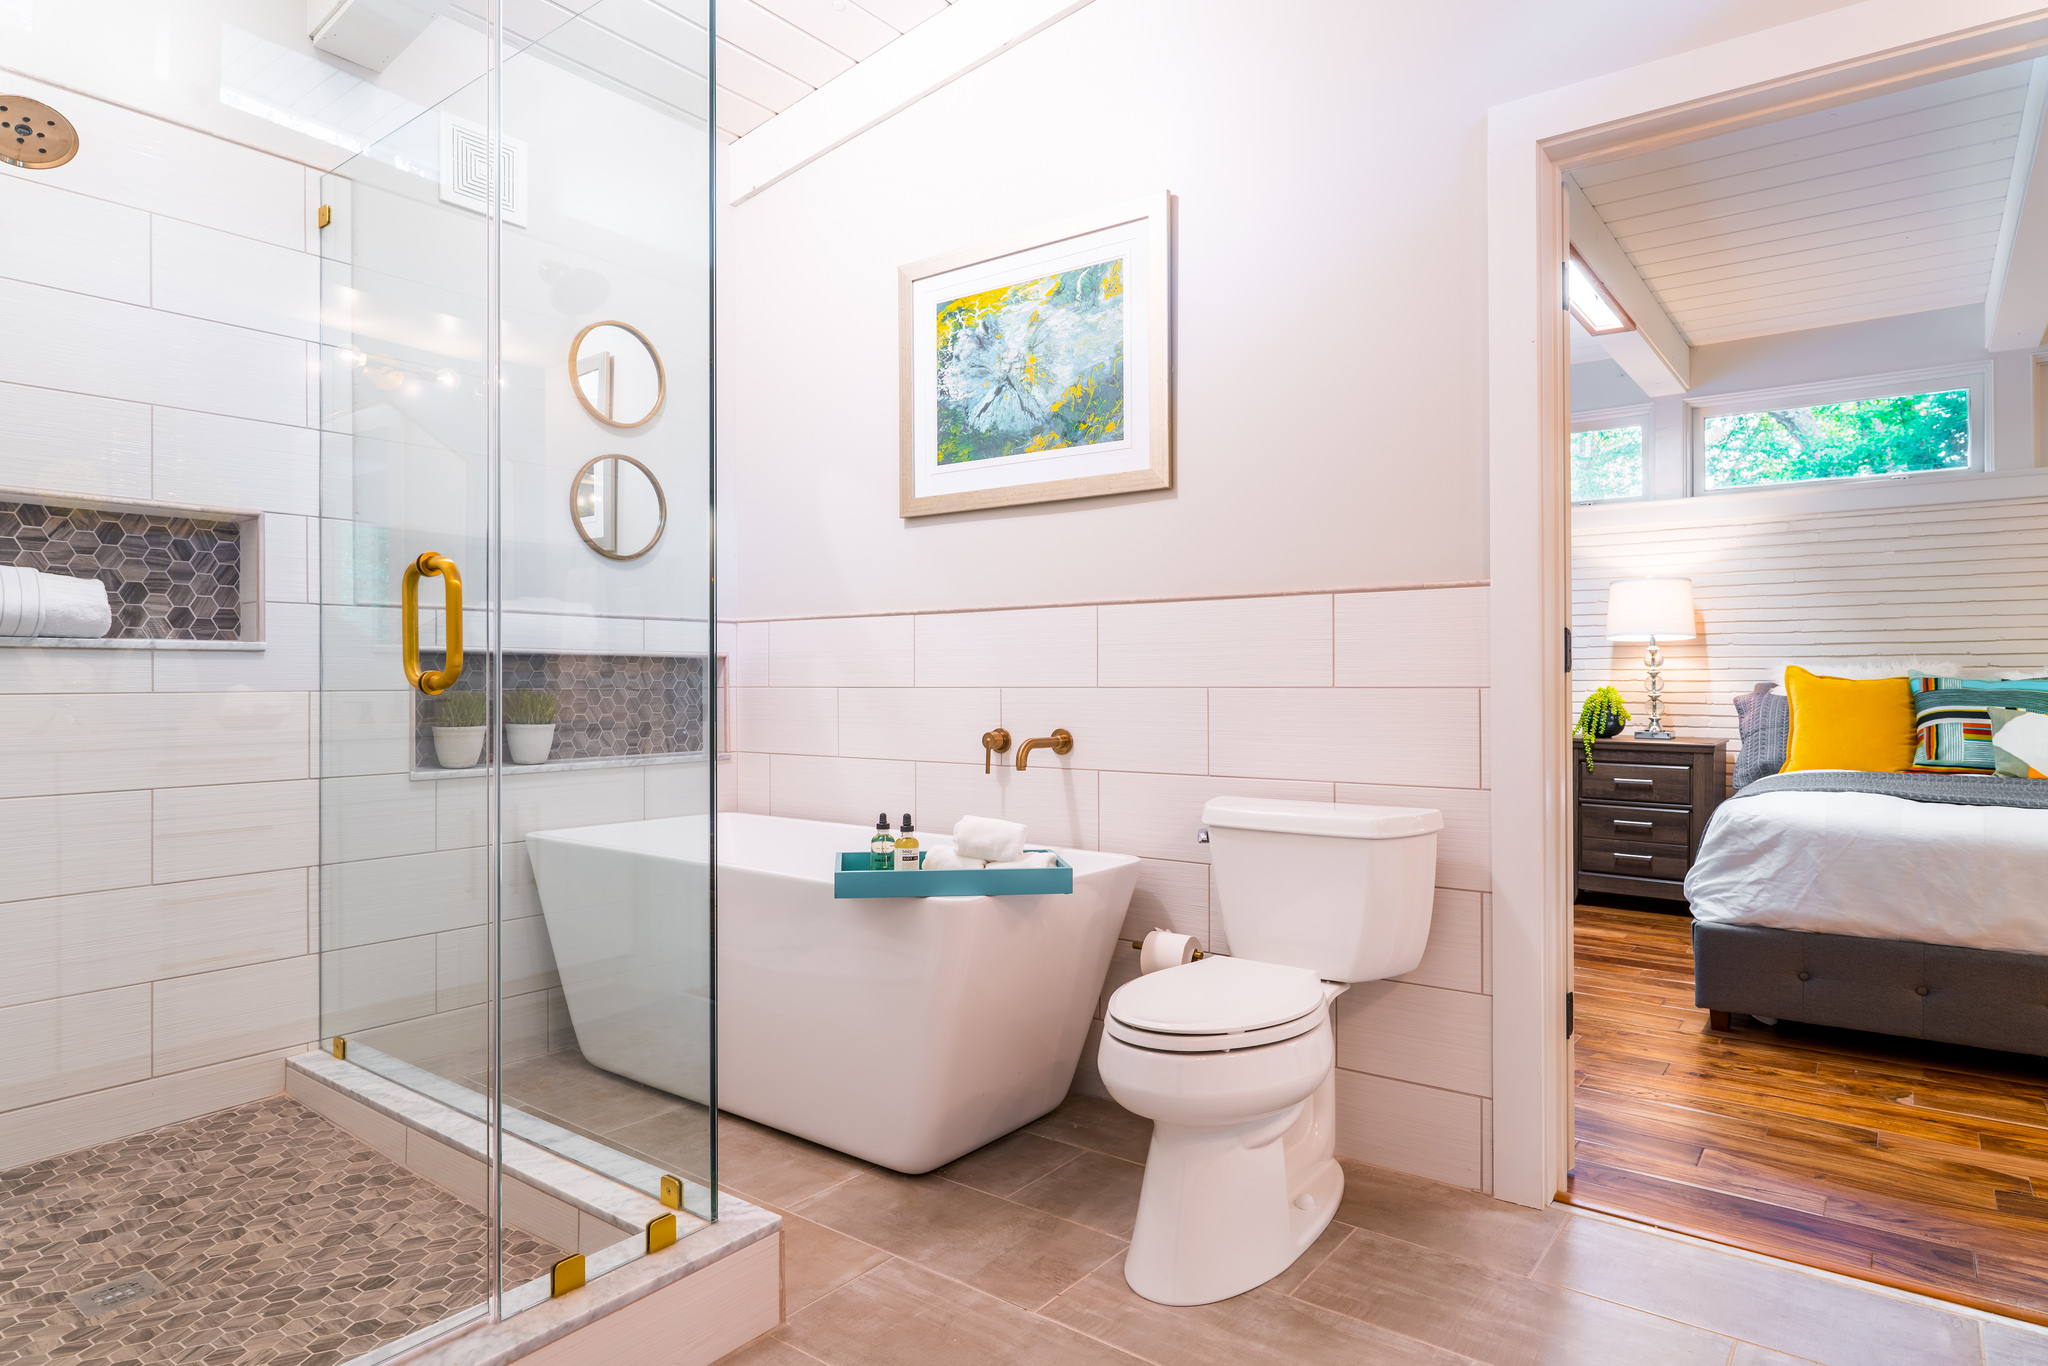 Master bath with large stand-up shower and soaking tub